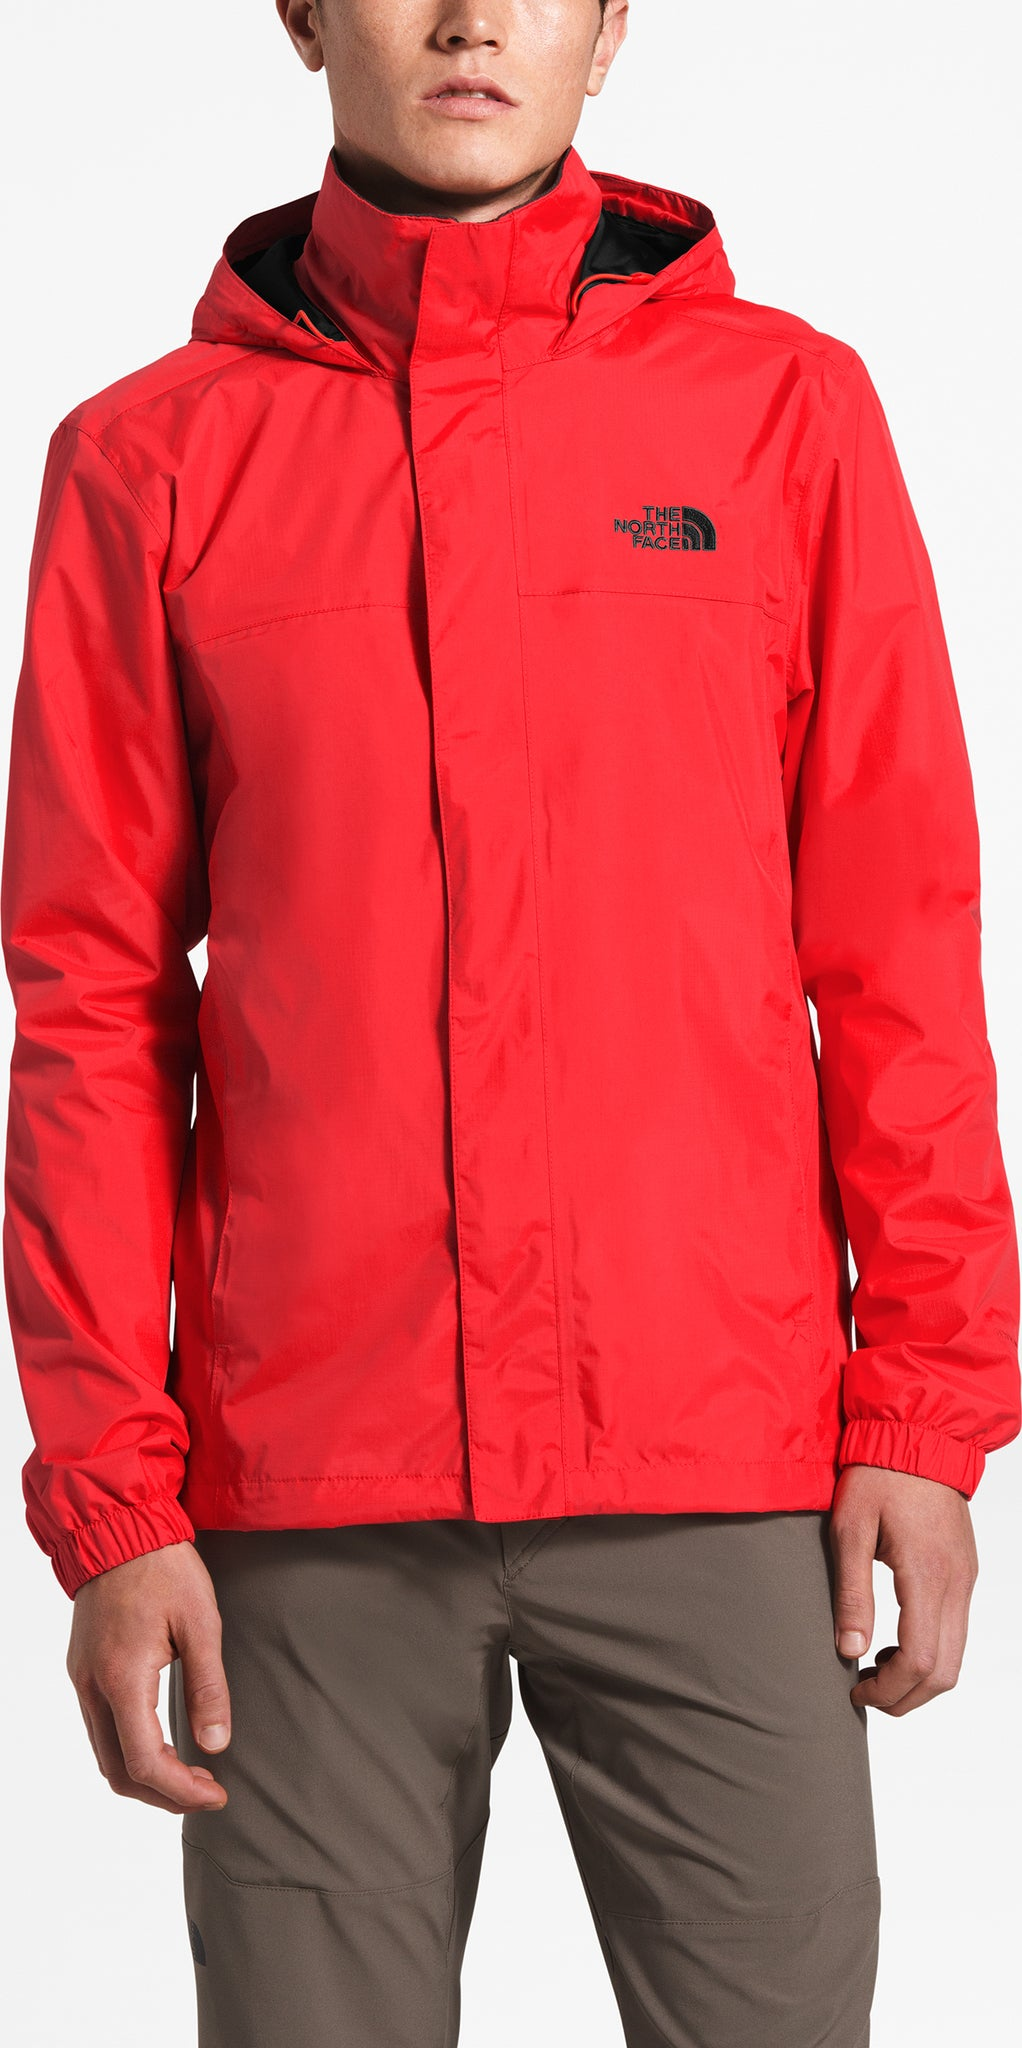 656b5b4e11 The North Face Resolve 2 Jacket - Men's | Altitude Sports